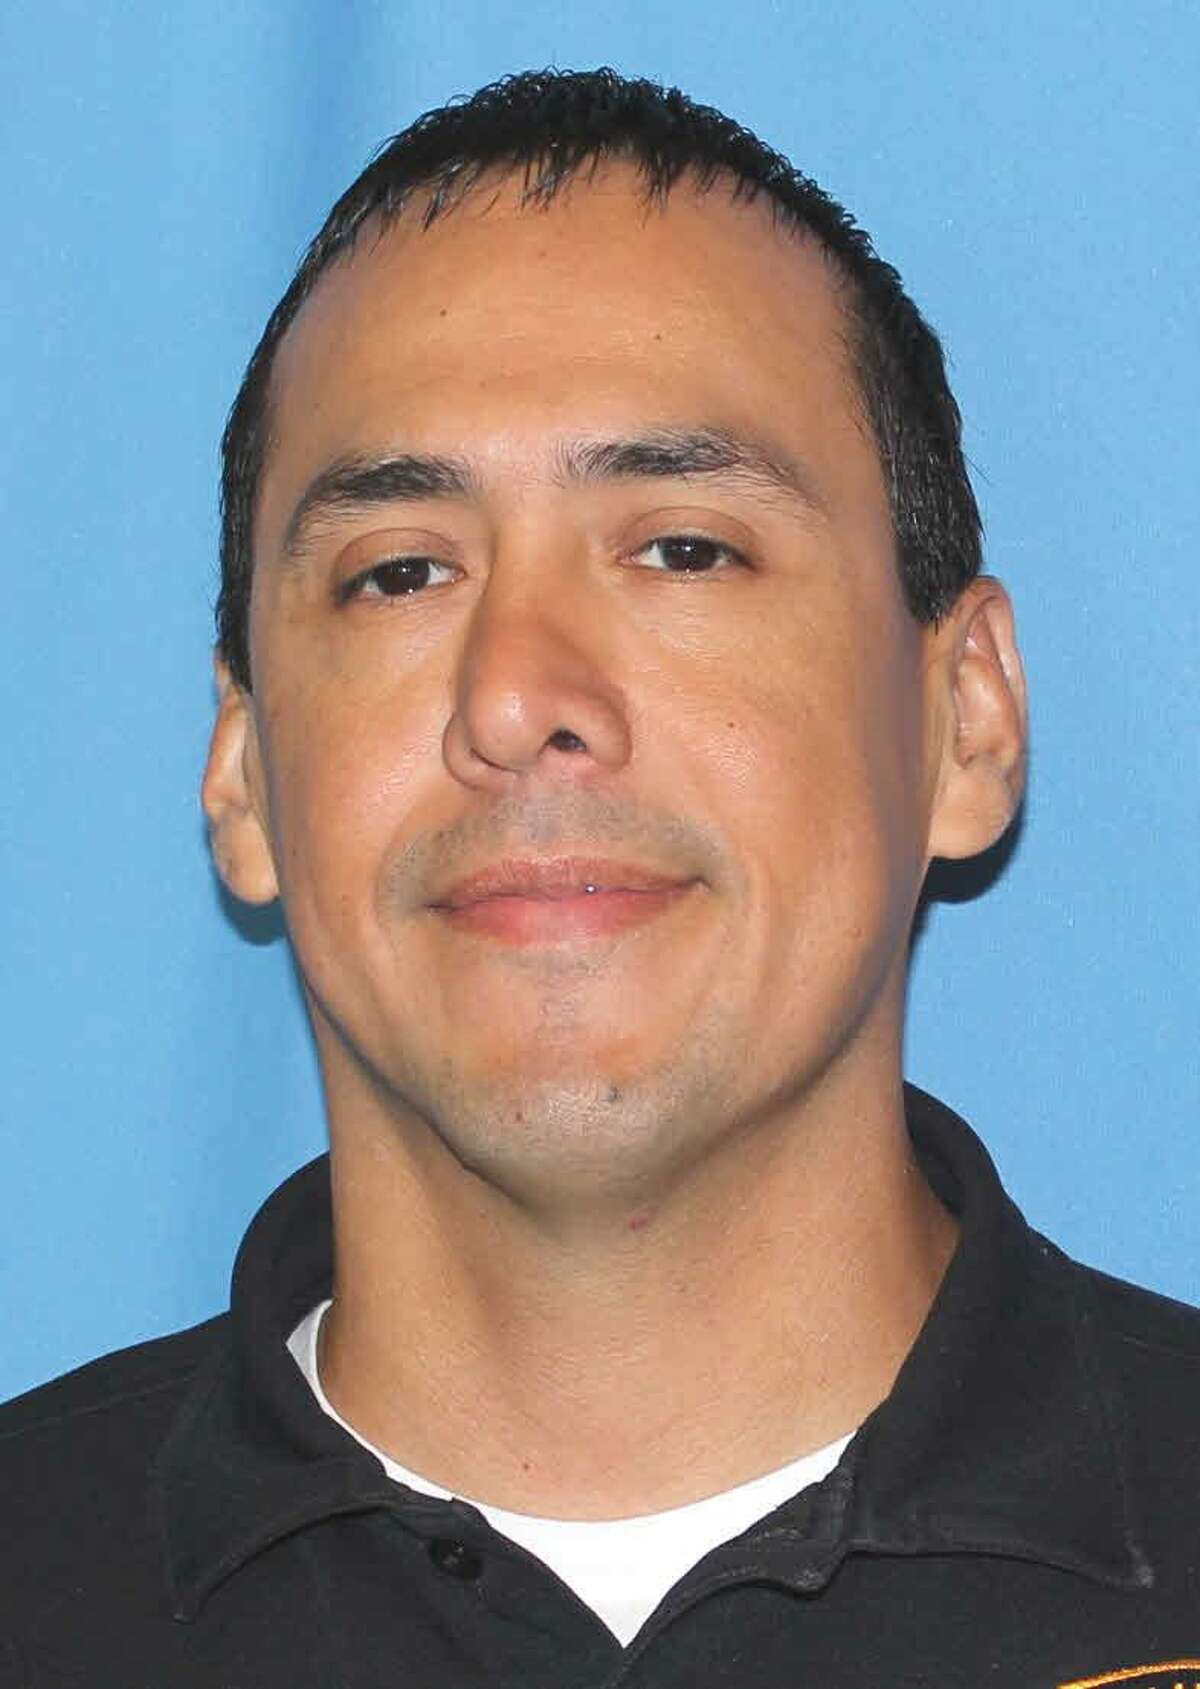 Former San Antonio Police Detective Kenneth Valdez, a 17-year veteran of the force, is accused of mishandling roughly 130 sexual assault and family violence cases.